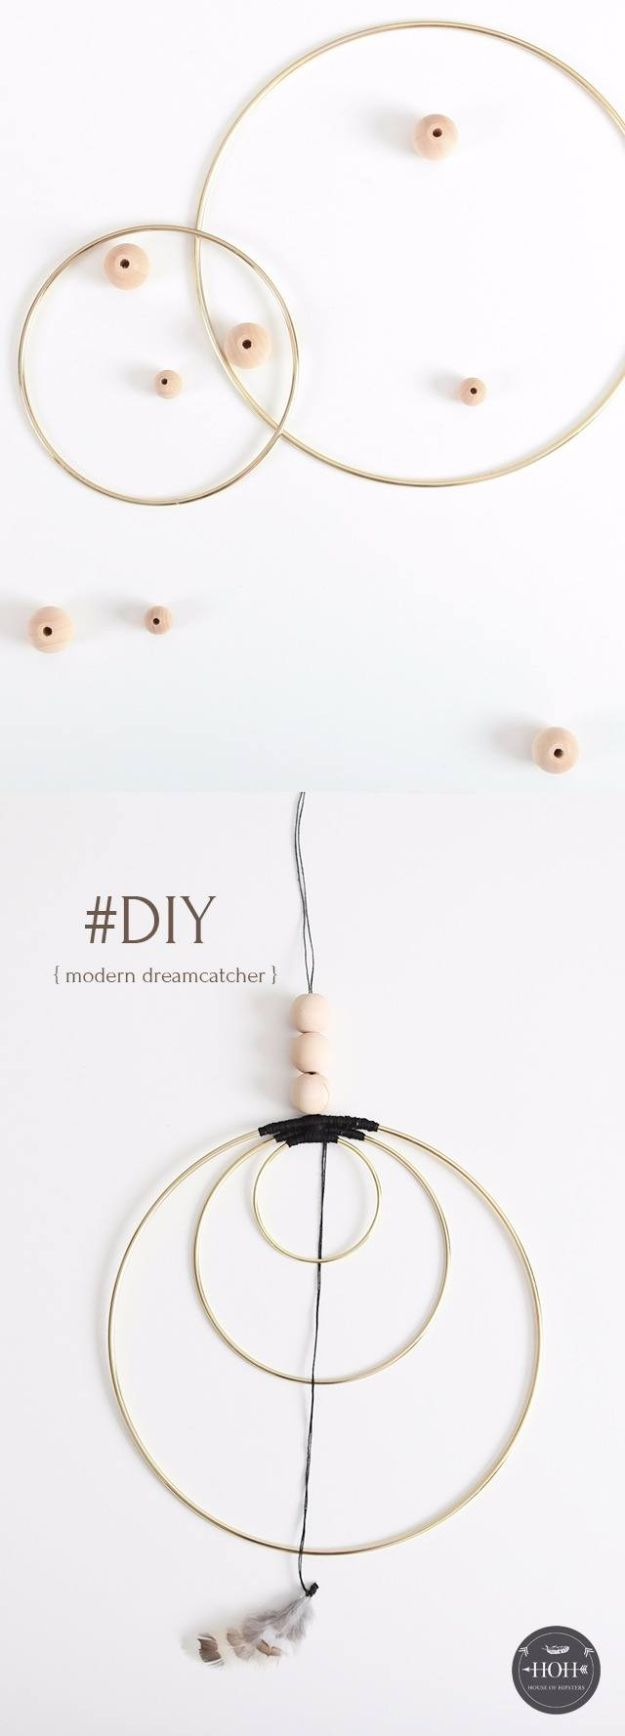 DIY Dream Catchers - Minimalist Dreamcatcher - How to Make a Dreamcatcher Step by Step Tutorial - Easy Ideas for Dream Catcher for Kids Room - Make a Mobile, Moon Designs, Pattern Ideas, Boho Dreamcatcher With Sticks, Cool Wall Hangings for Teen Rooms - Cheap Home Decor Ideas on A Budget http://diyprojectsforteens.com/diy-dreamcatchers